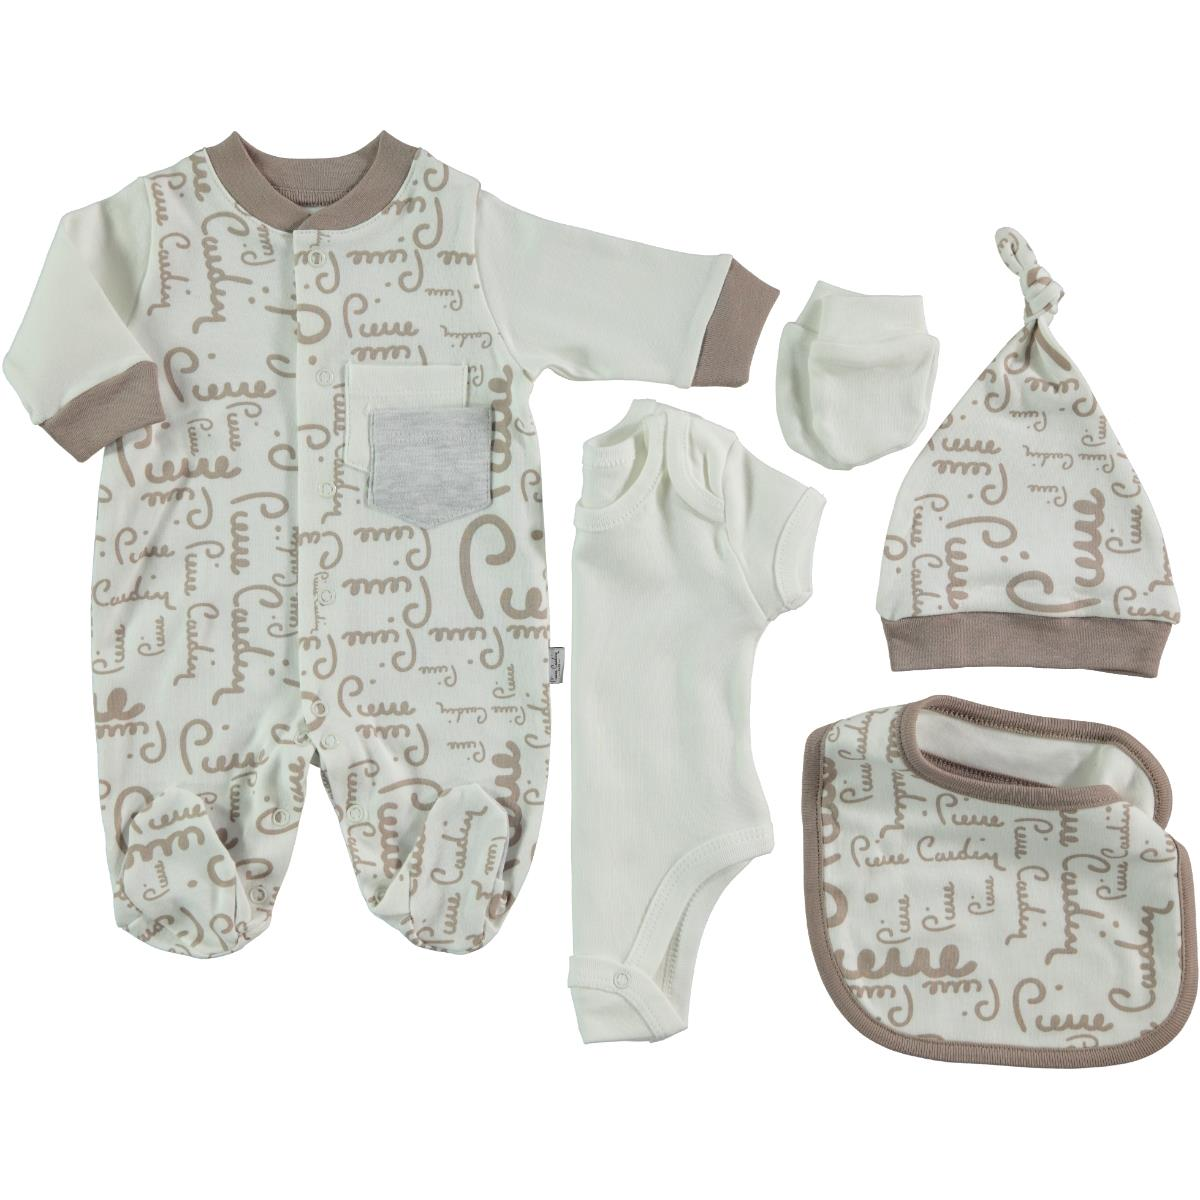 Pierre Cardin Baby Jumpsuit 5-set 0-3 months, Brown